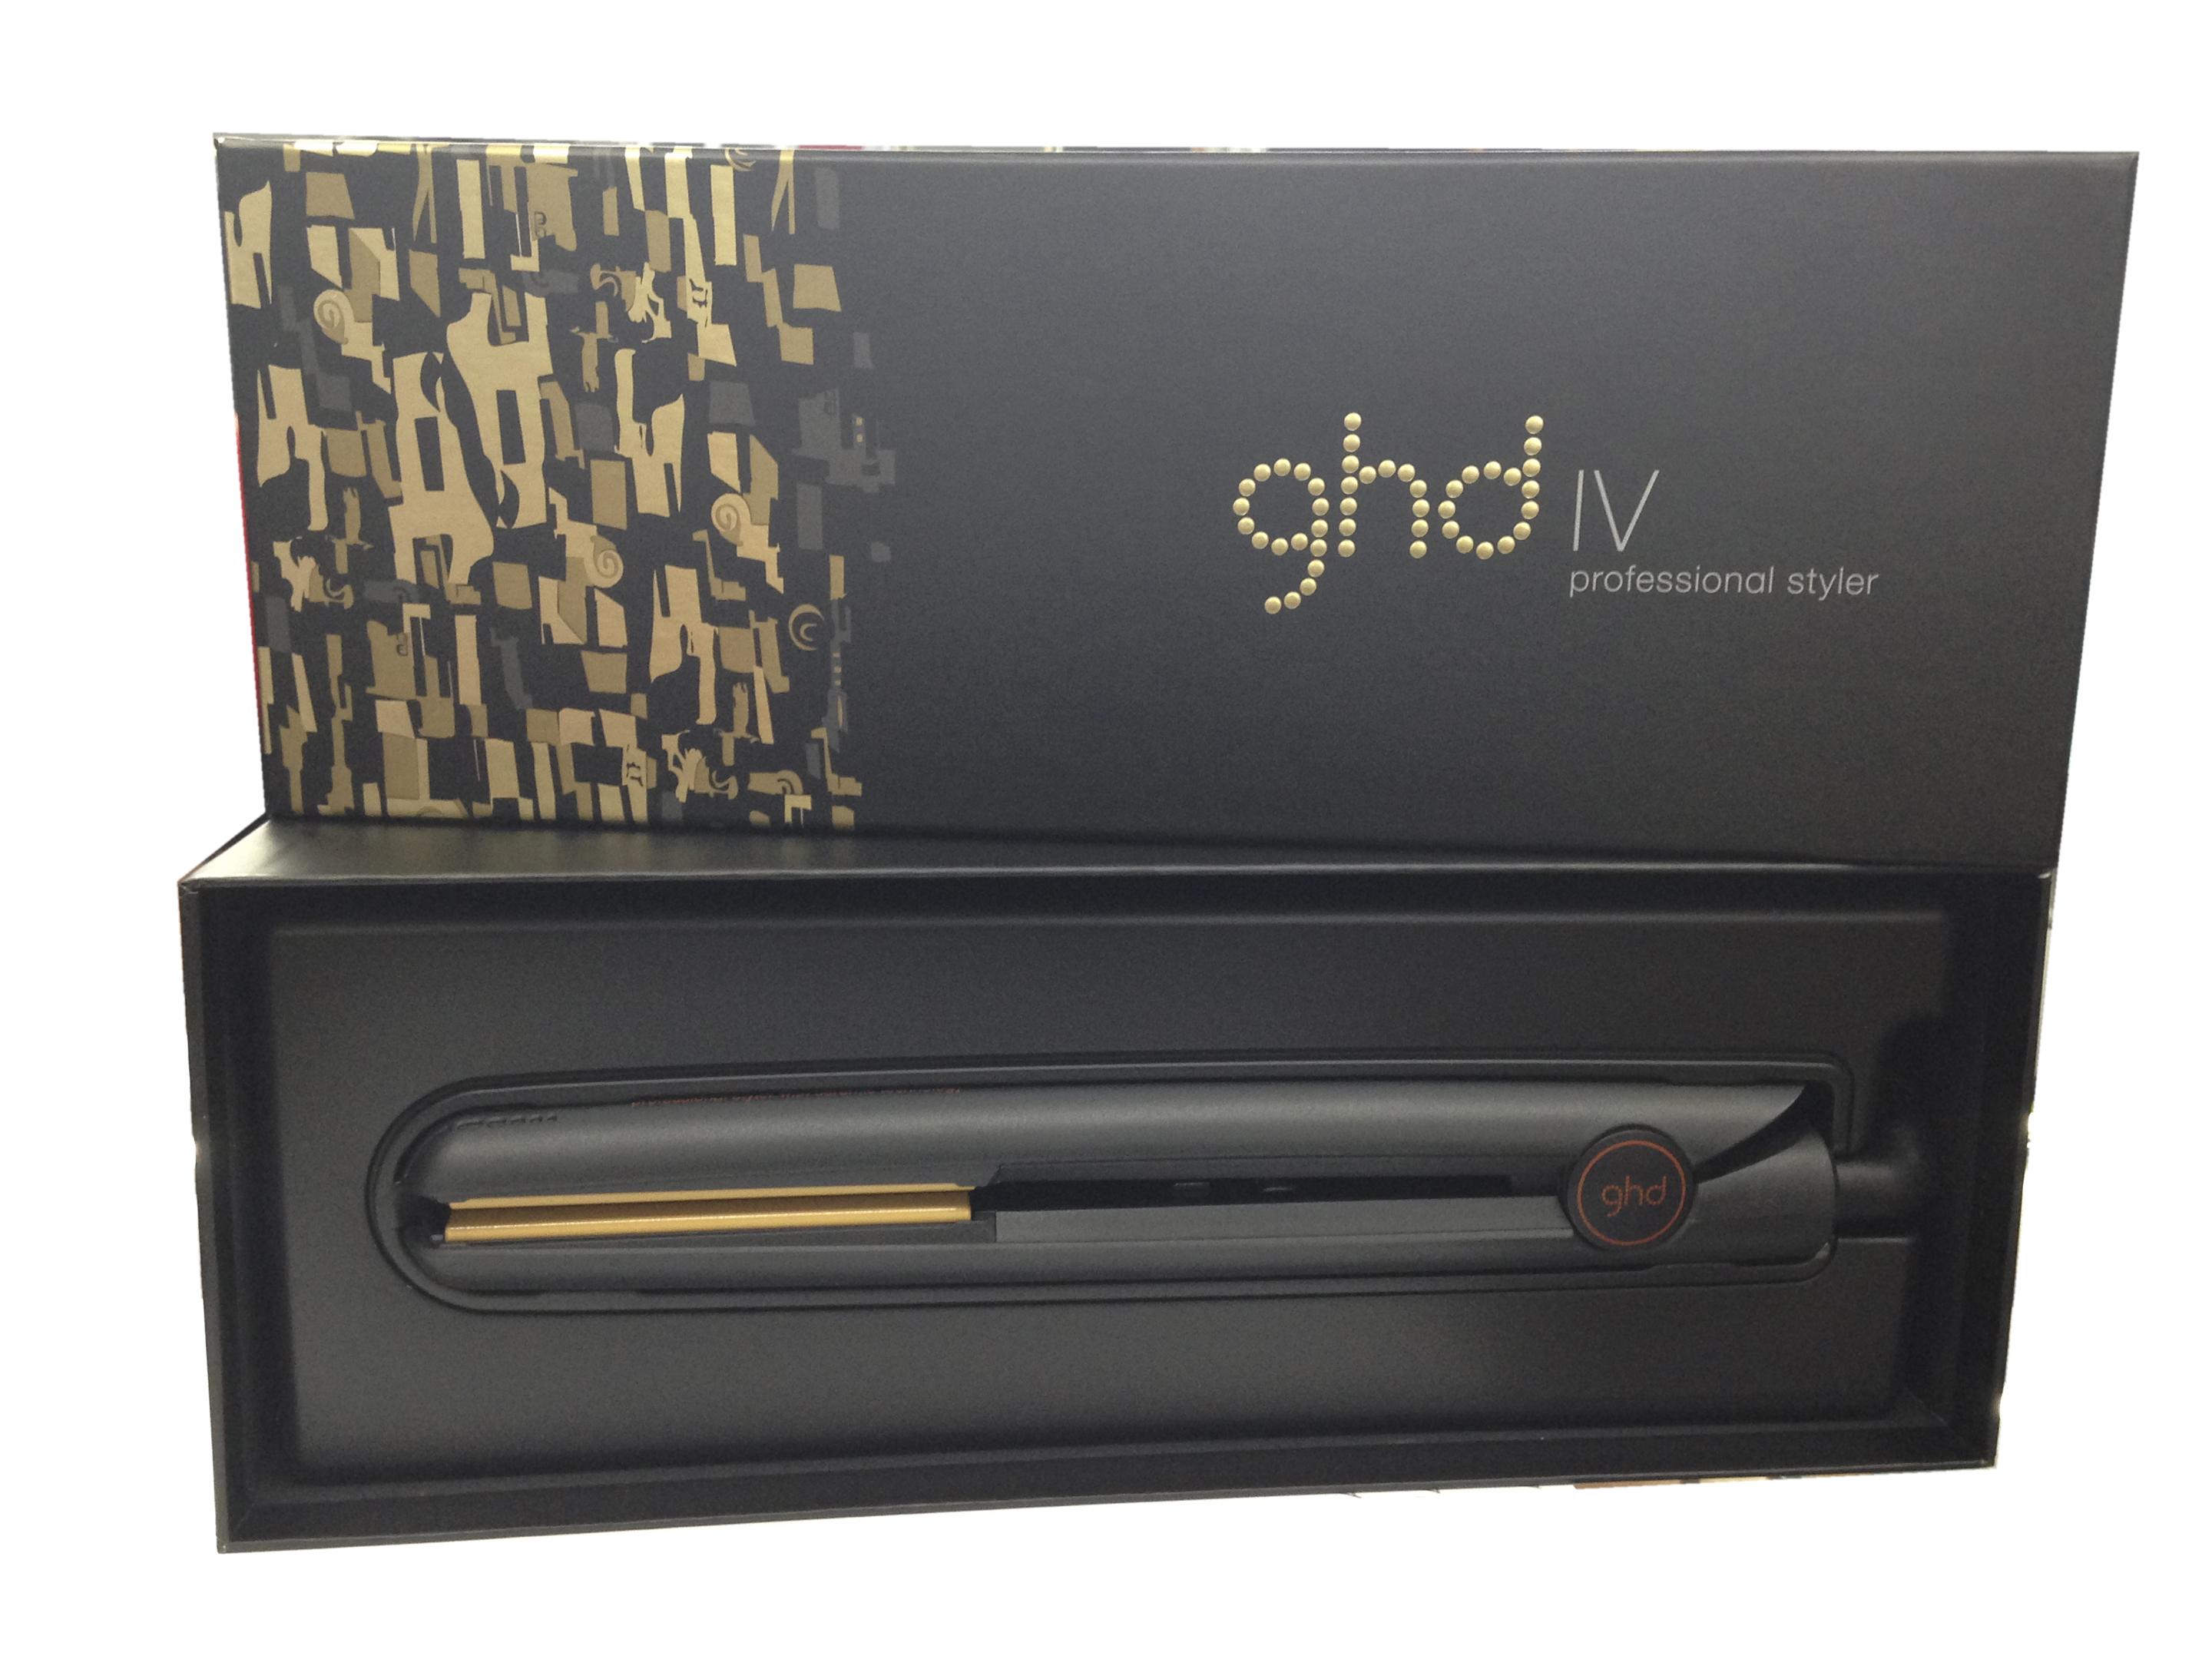 ghd iv gold classic styler. Black Bedroom Furniture Sets. Home Design Ideas